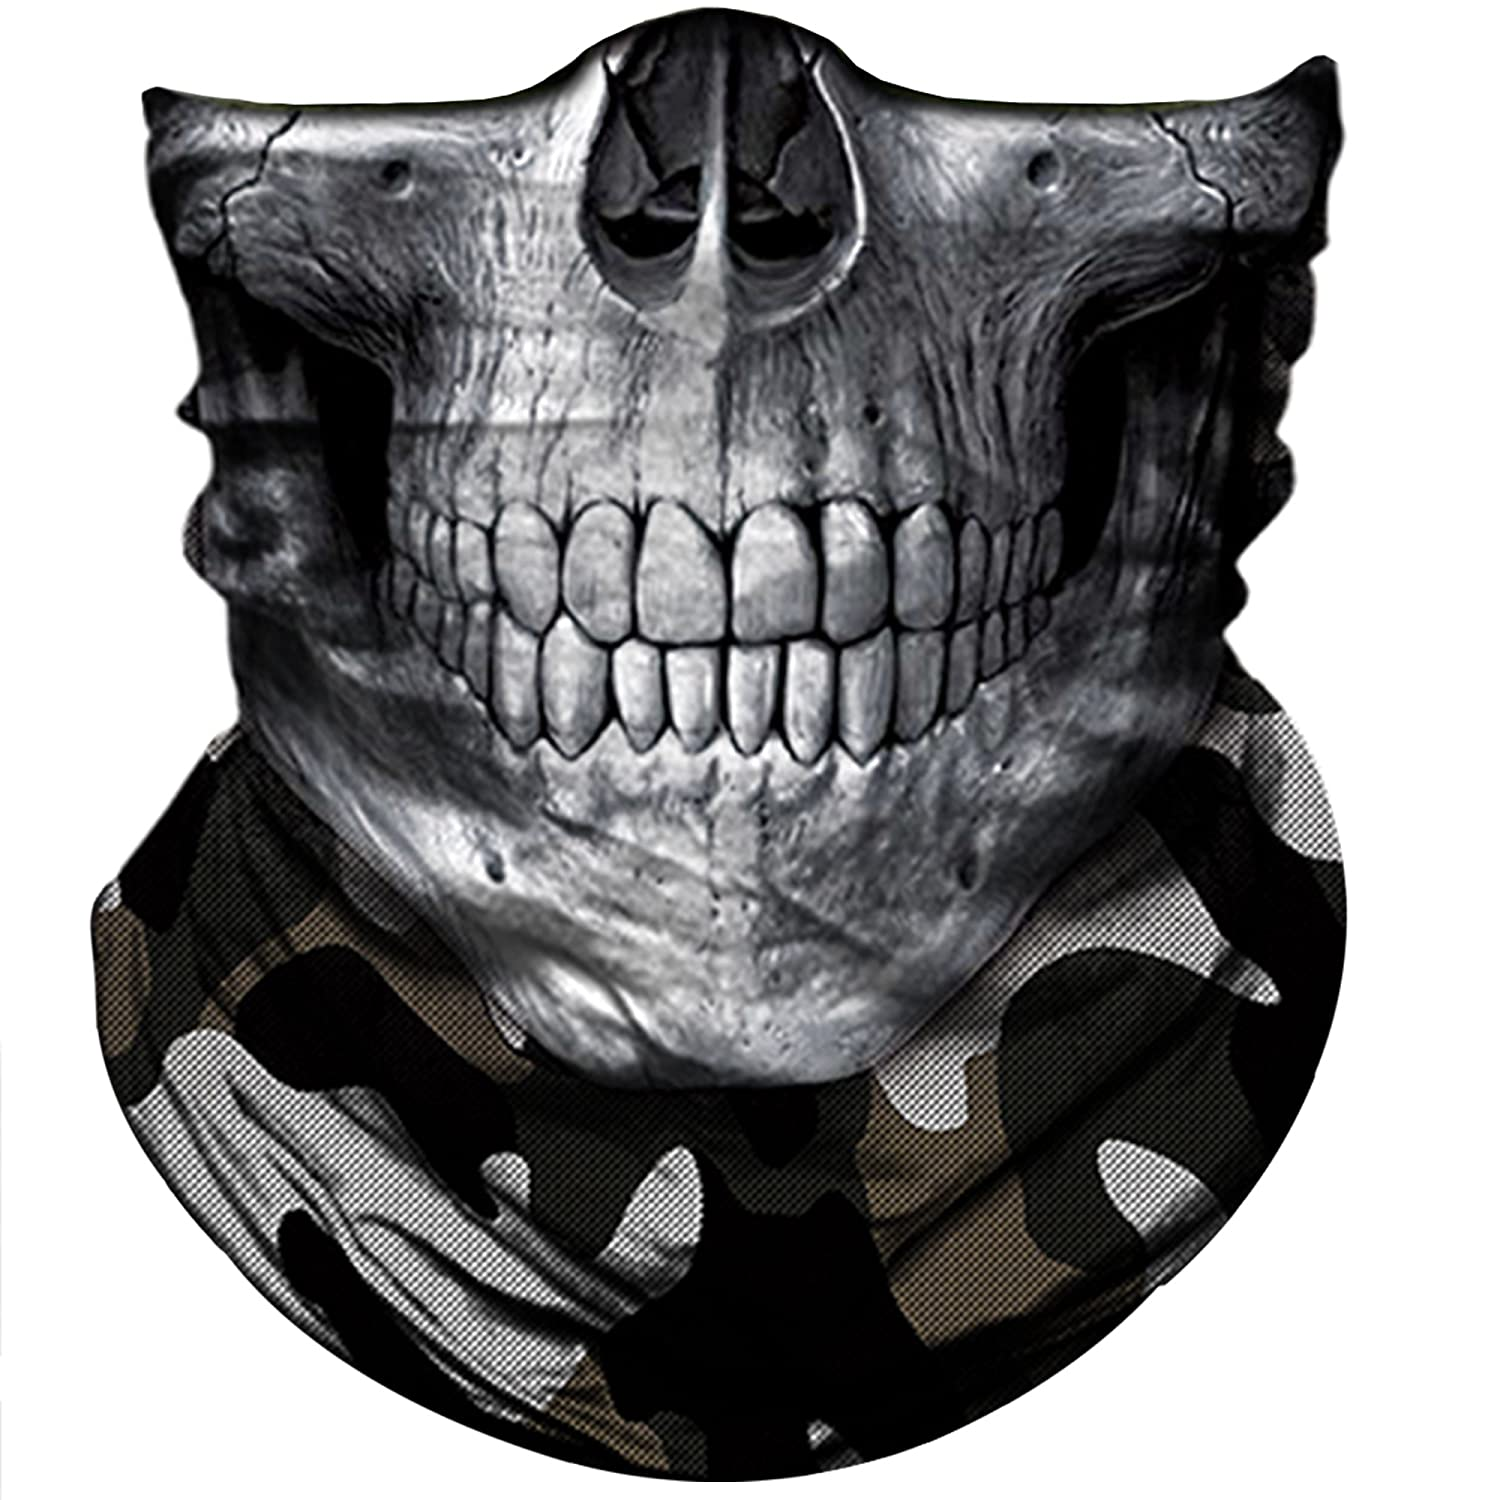 Skull Face Bandana Mask Headwear Ski Motorcycle Cycling Hiking Obacle